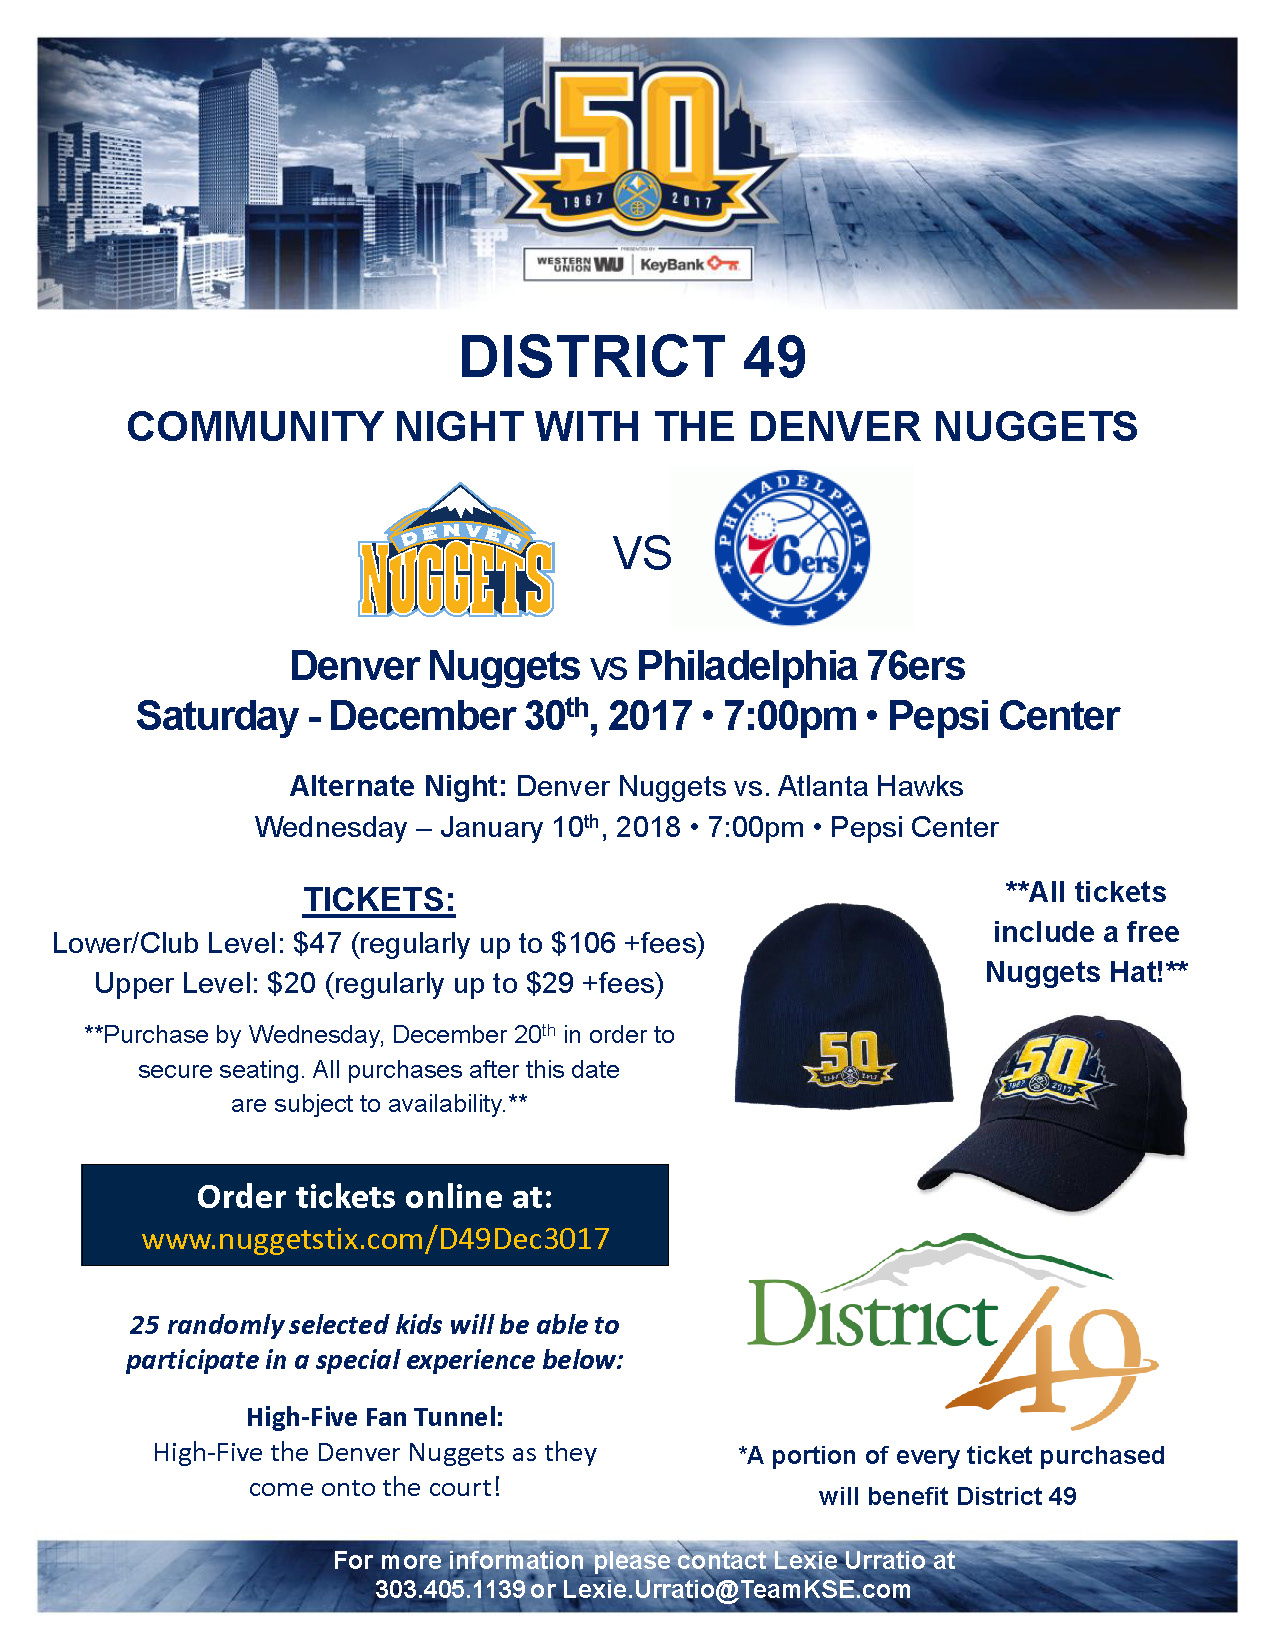 DISTRICT 49: COMMUNITY NIGHT WITH THE DENVER NUGGETS